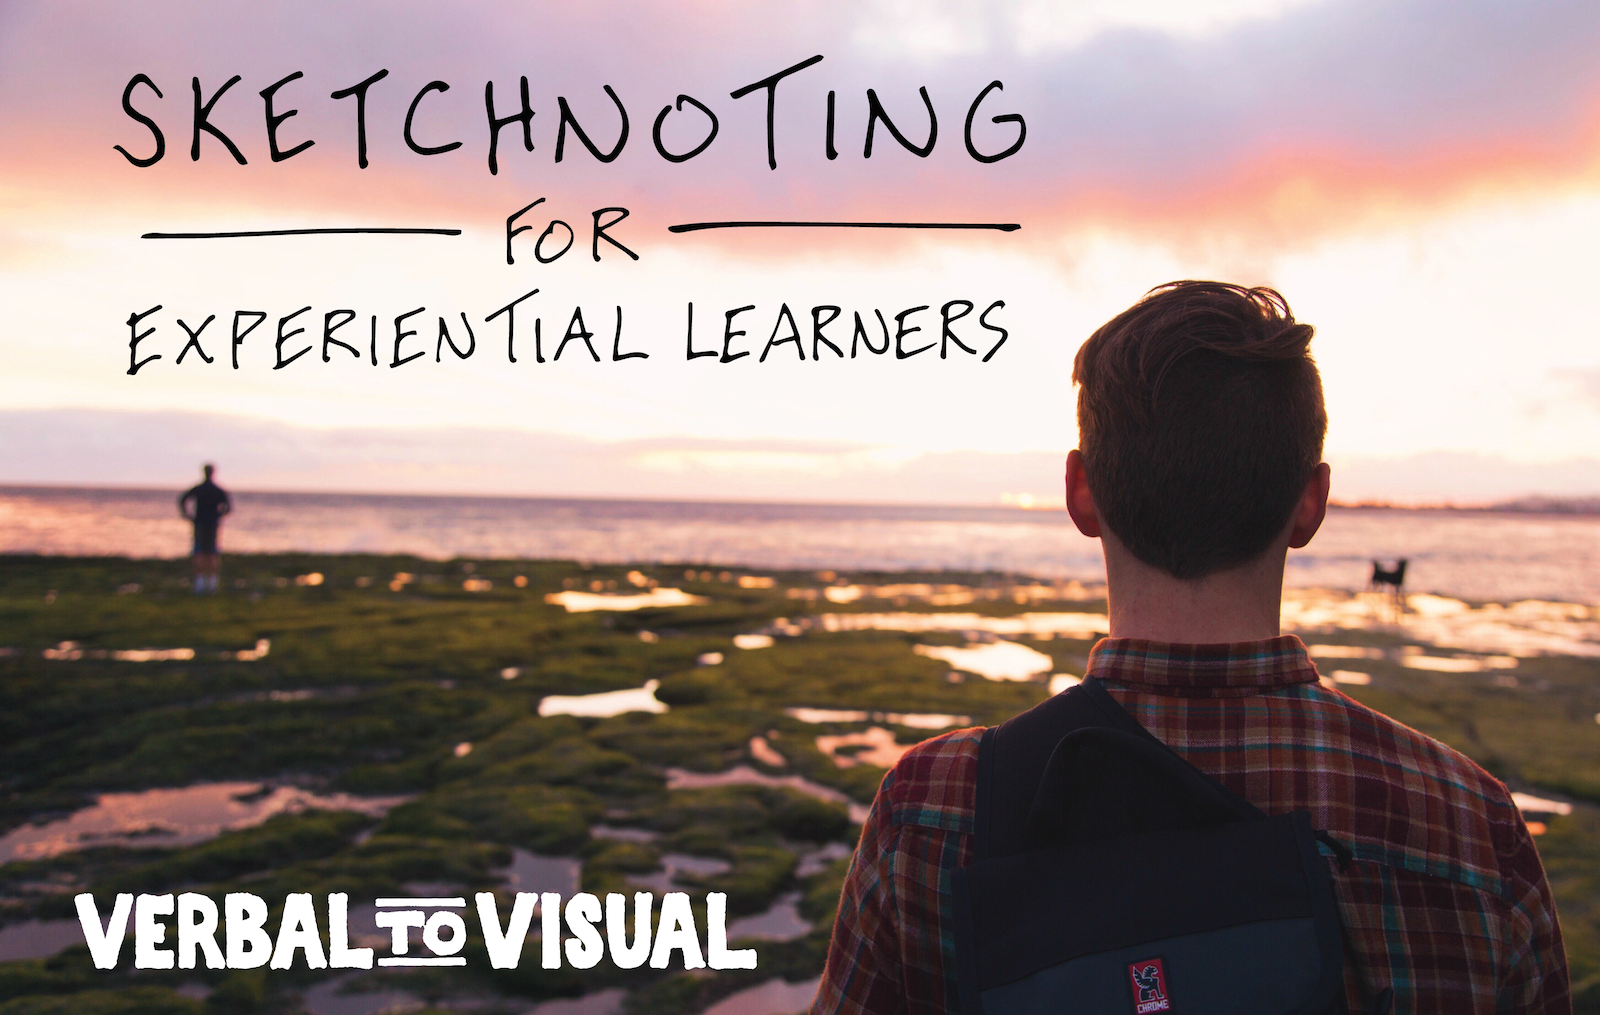 Sketchnoting For Experiential Learners - Verbal To Visual Video Episode 16 - Doug Neill